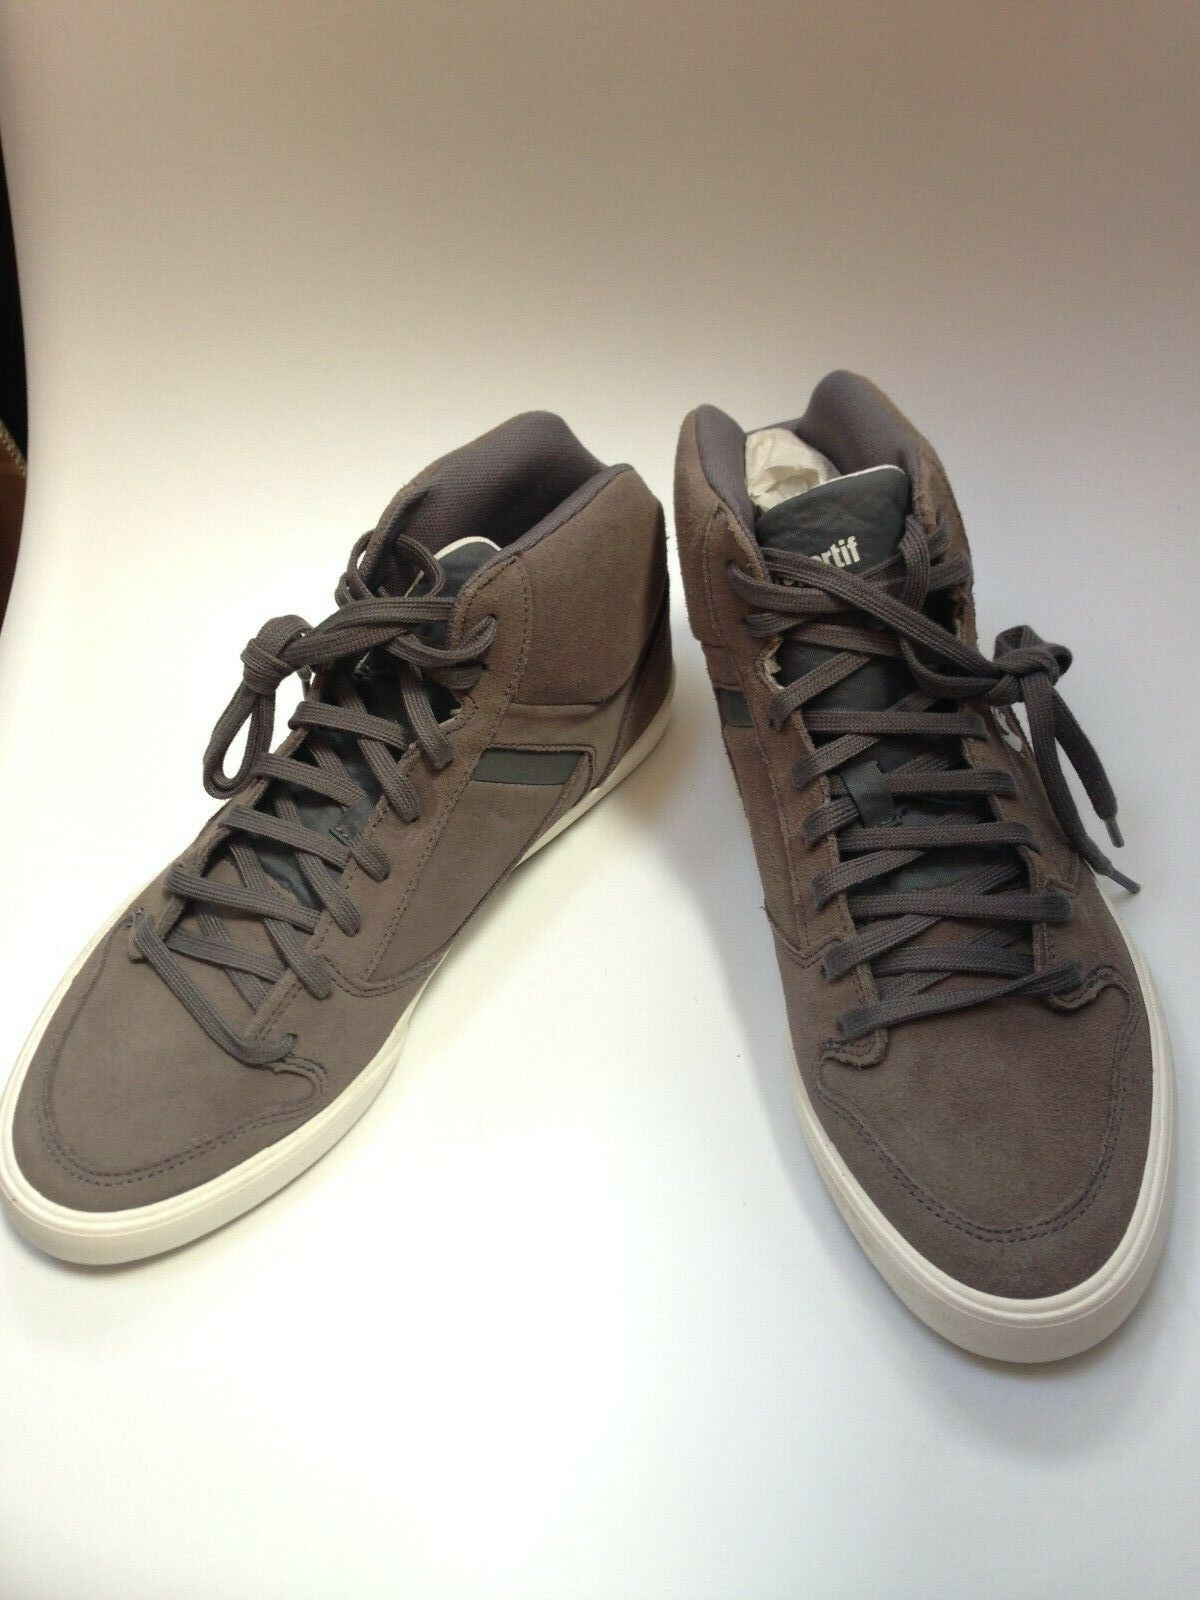 Chaussure Homme Le Coq Sportif gris taille 40